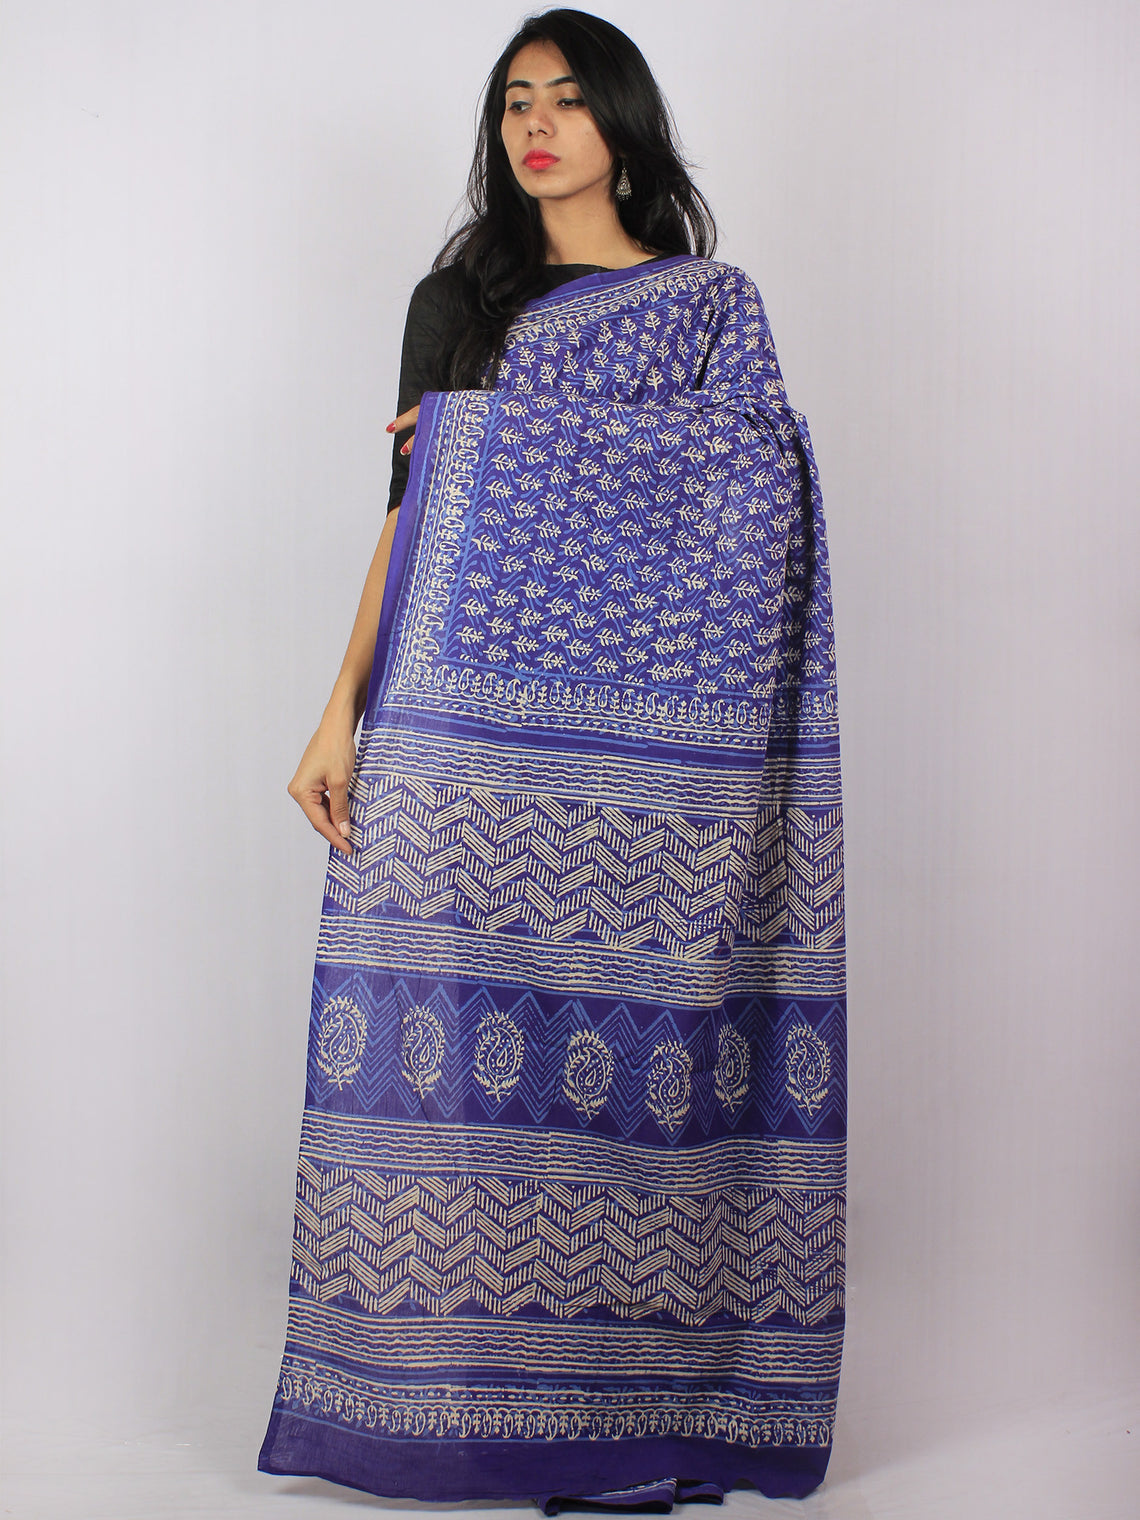 Purple Ivory Blue Hand Block Printed Cotton Saree in Natural Colors - S03170825